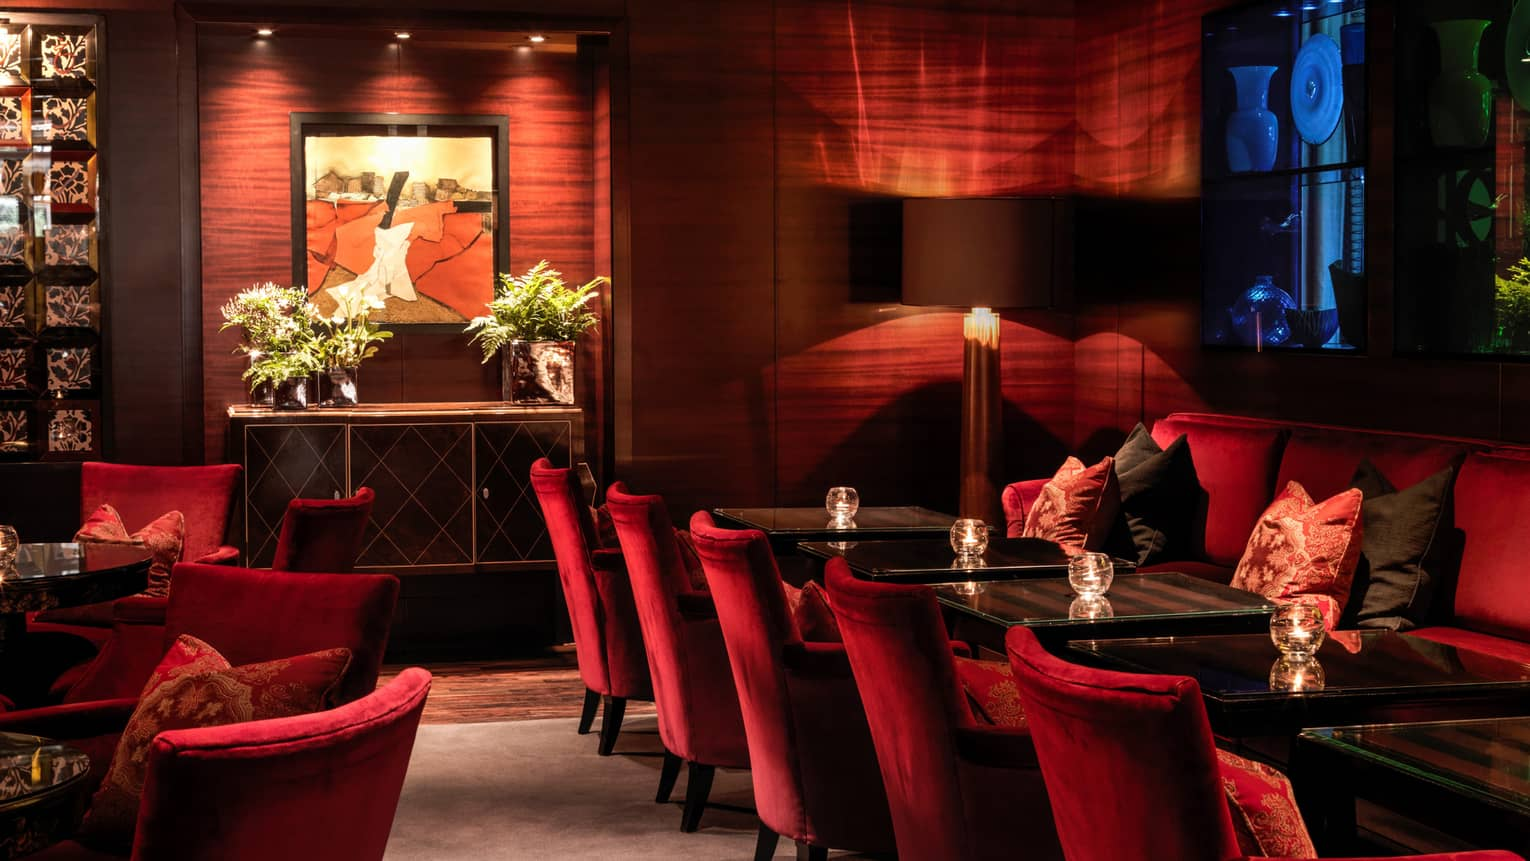 Red velvet chairs along Amaranto Lounge dining tables, modern wood walls, art, dim lighting